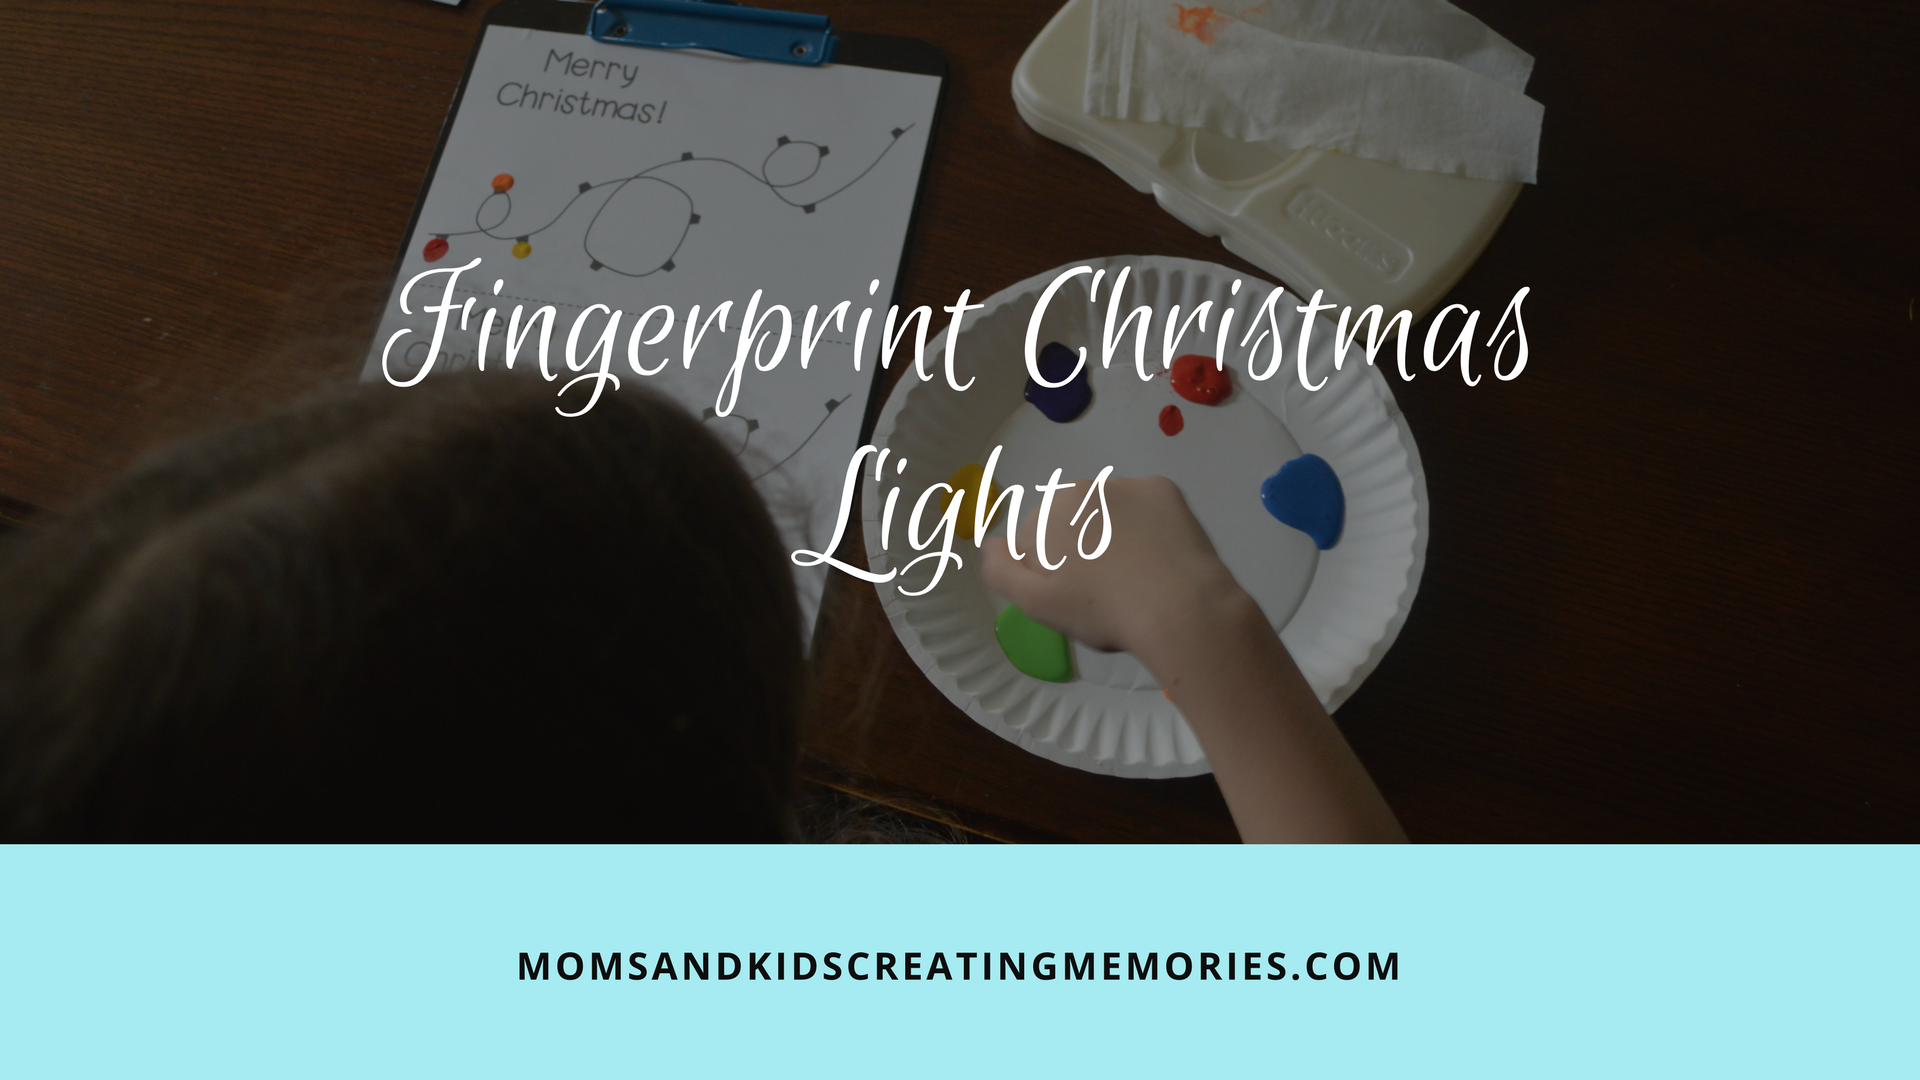 Fingerprint Christmas Lights - a easy craft to do as a gift, as a card or just for fun. My kids could do this craft almost completely by themselves and they had so much fun with it and I loved being able to see their creativity.